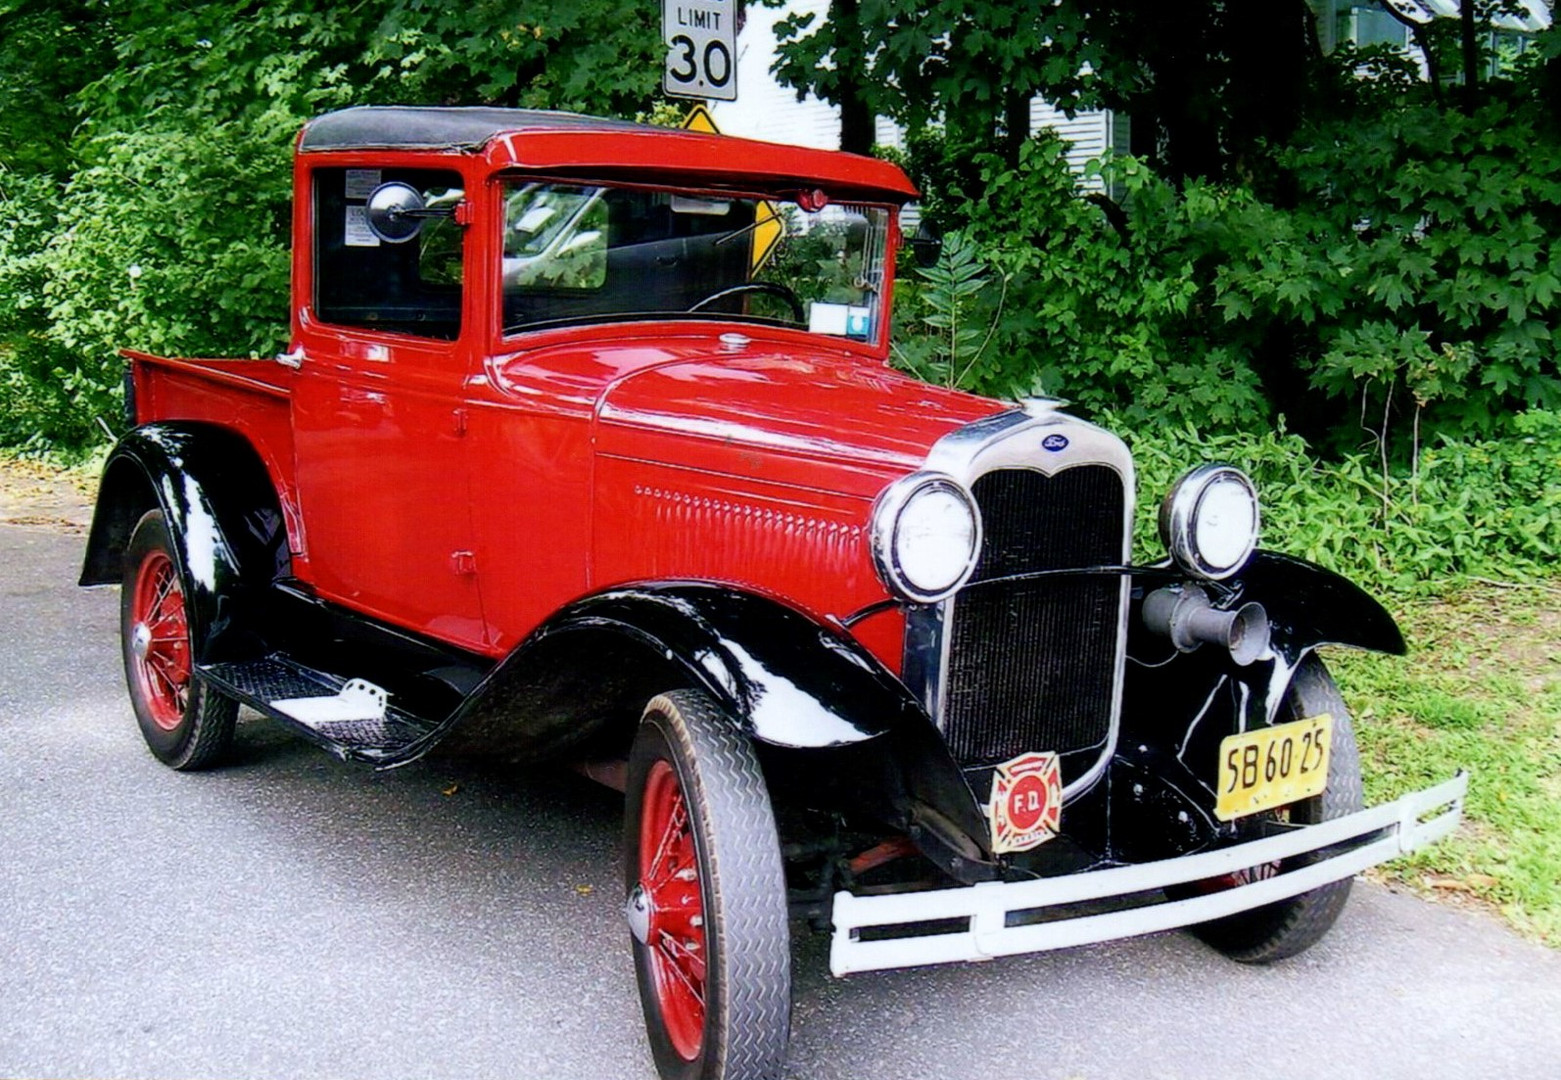 Walter Blessing's 1931 Ford Model A